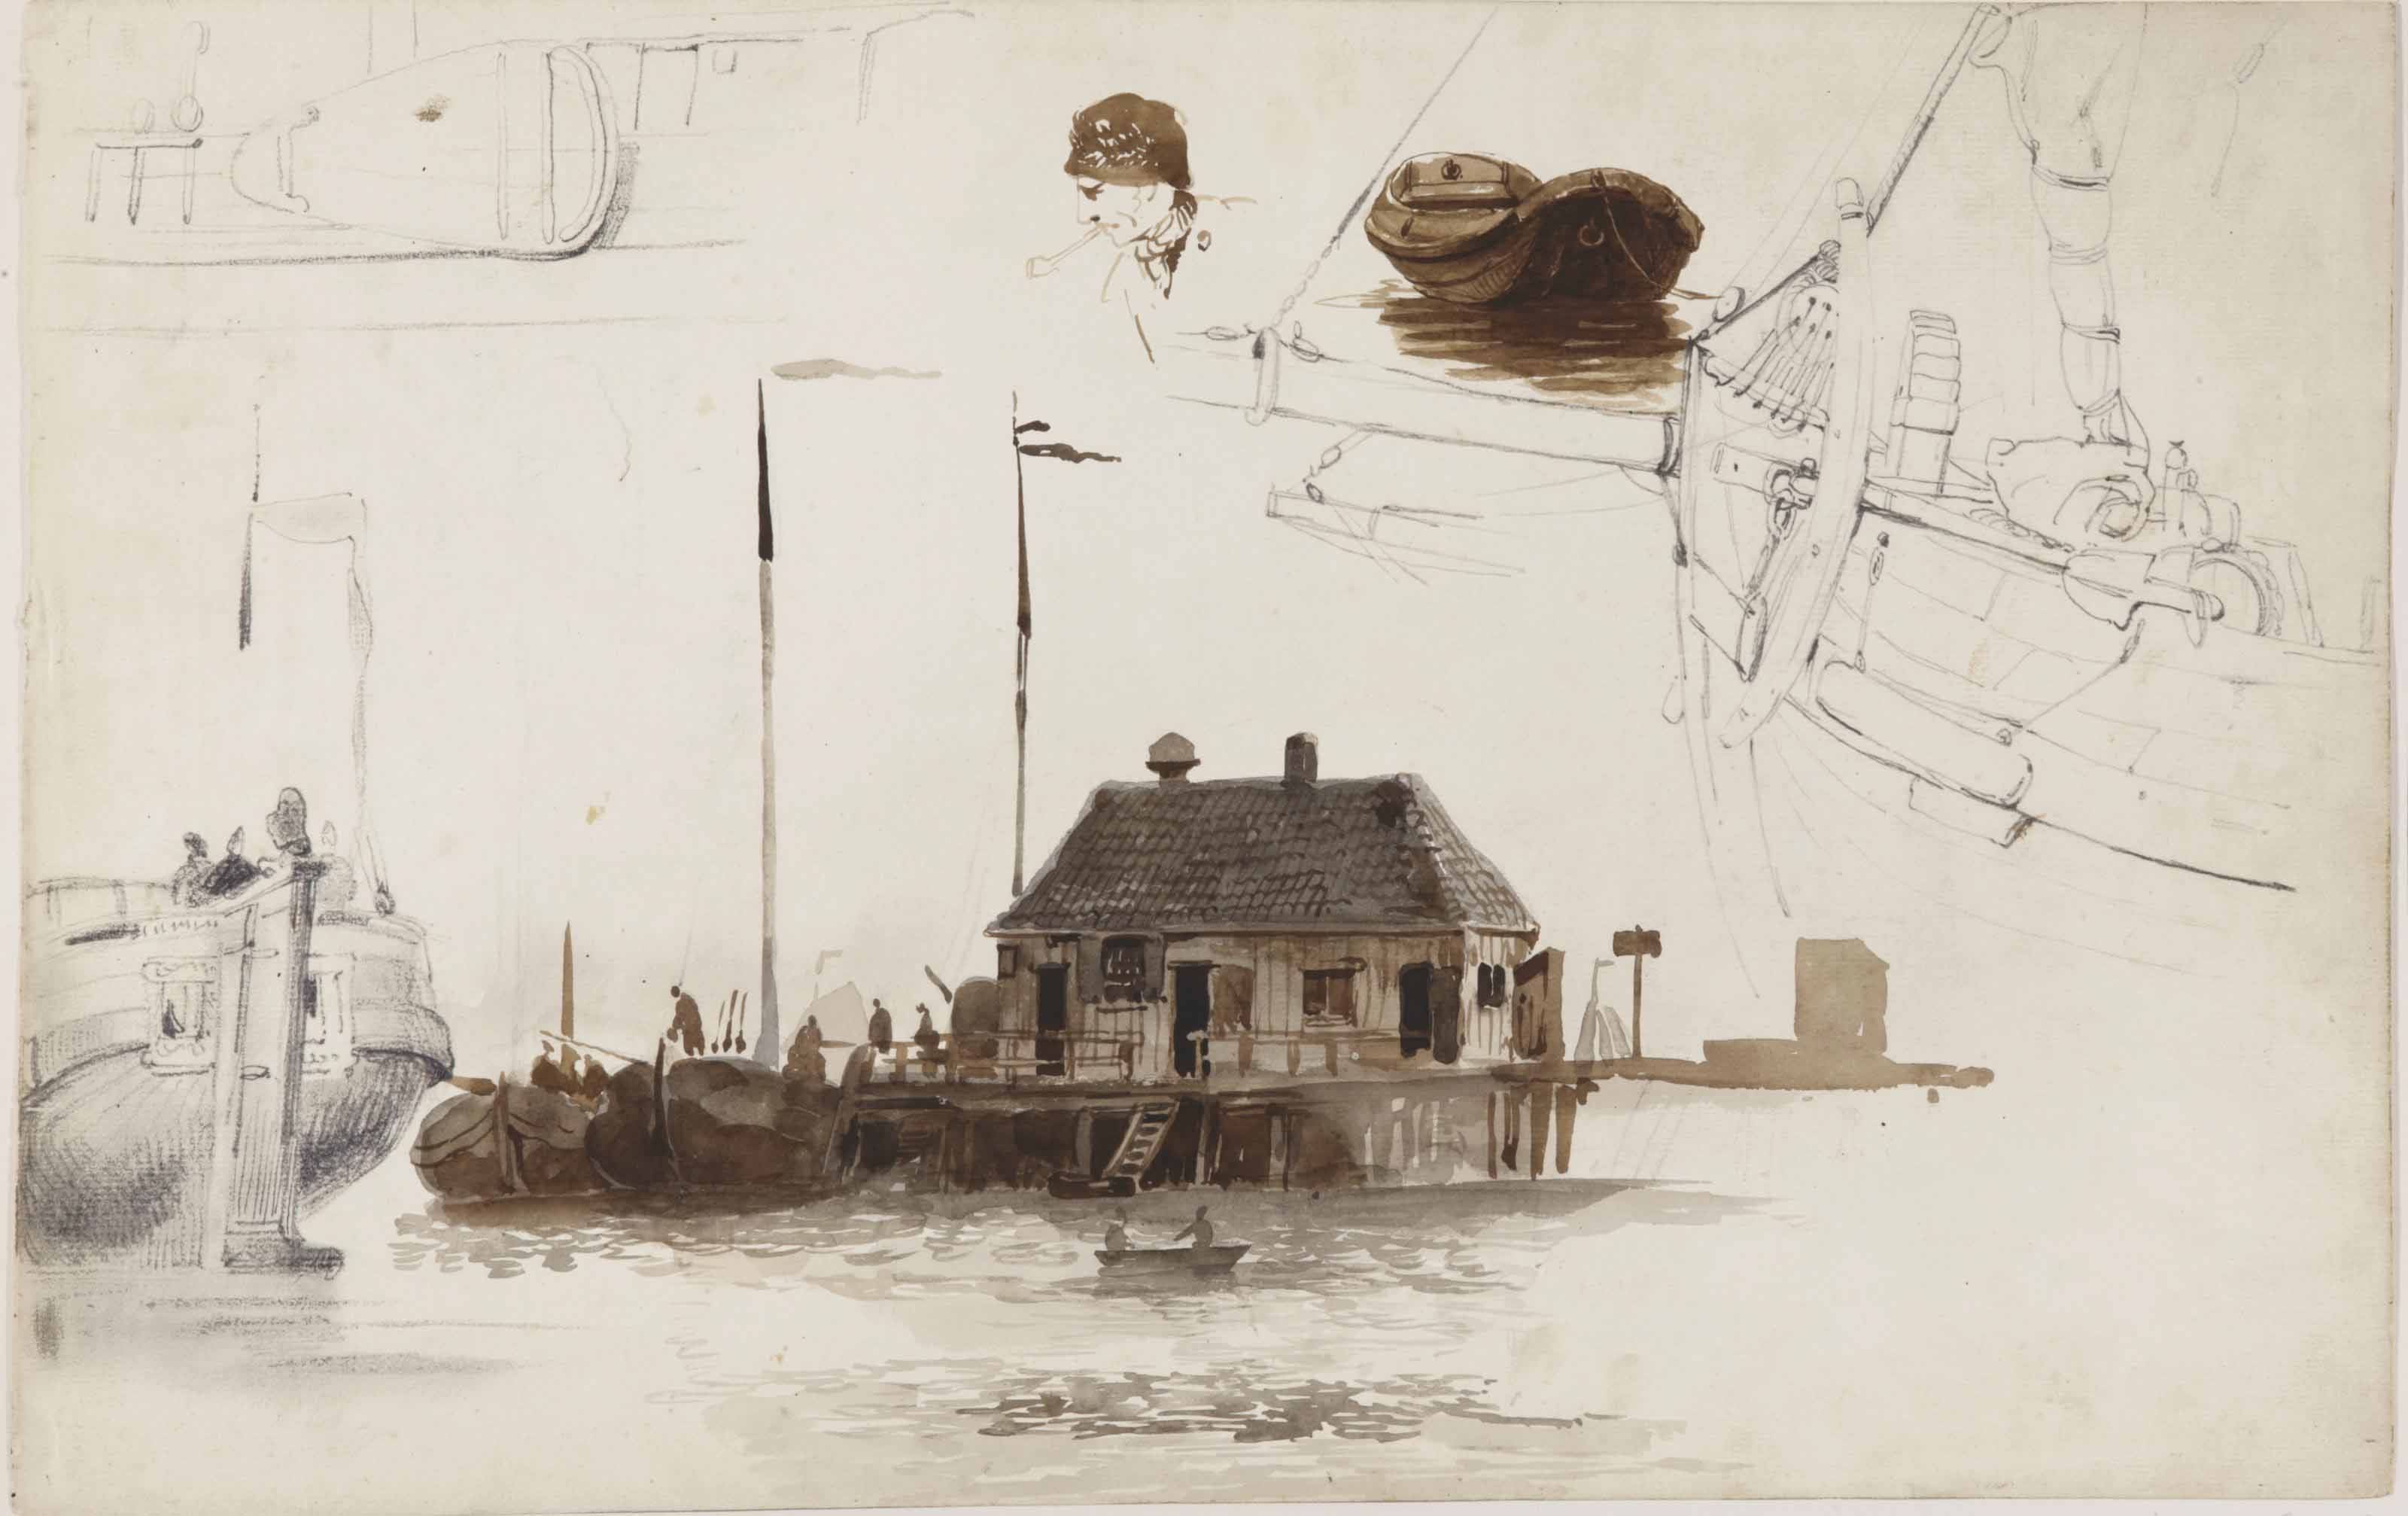 A sheet of studies, with a jetty and a tree house (Boomhuisje) on the IJ, Amsterdam